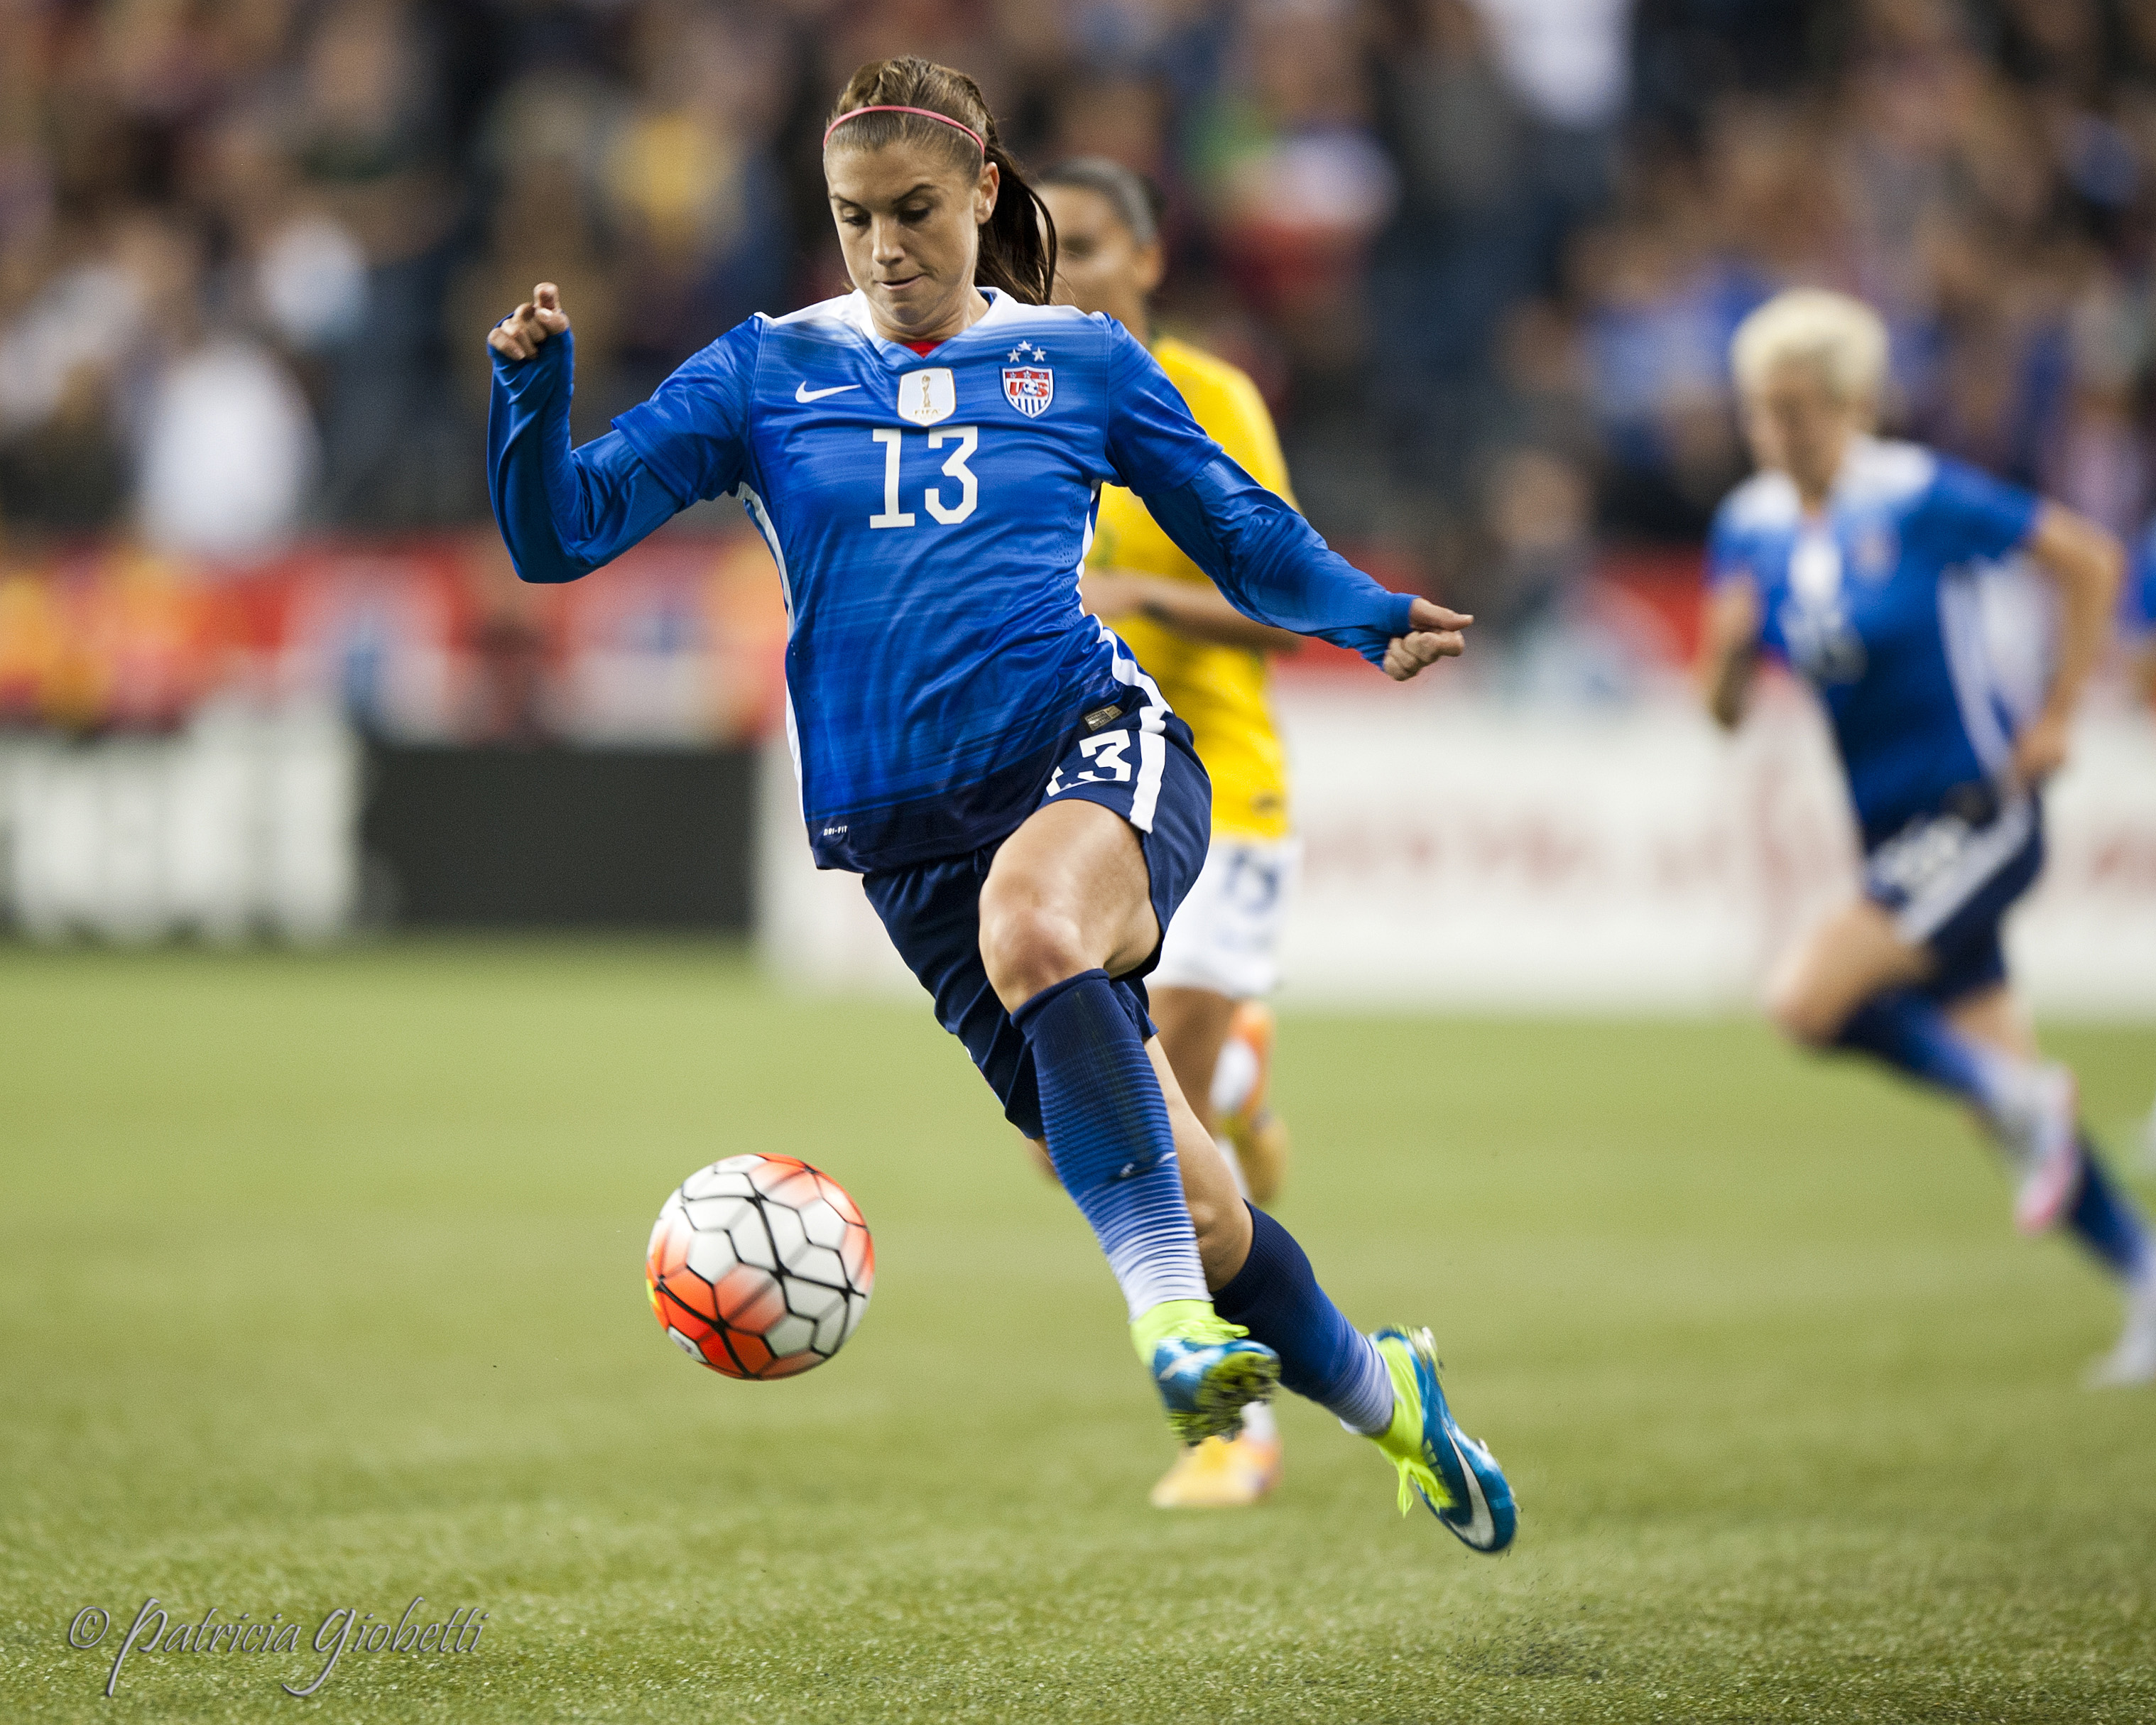 Alex Morgan scored as the U.S. women defeated Brazil, 3-1 on Sunday.  (Photo Copyright Patricia Giobetti for The Equalizer)